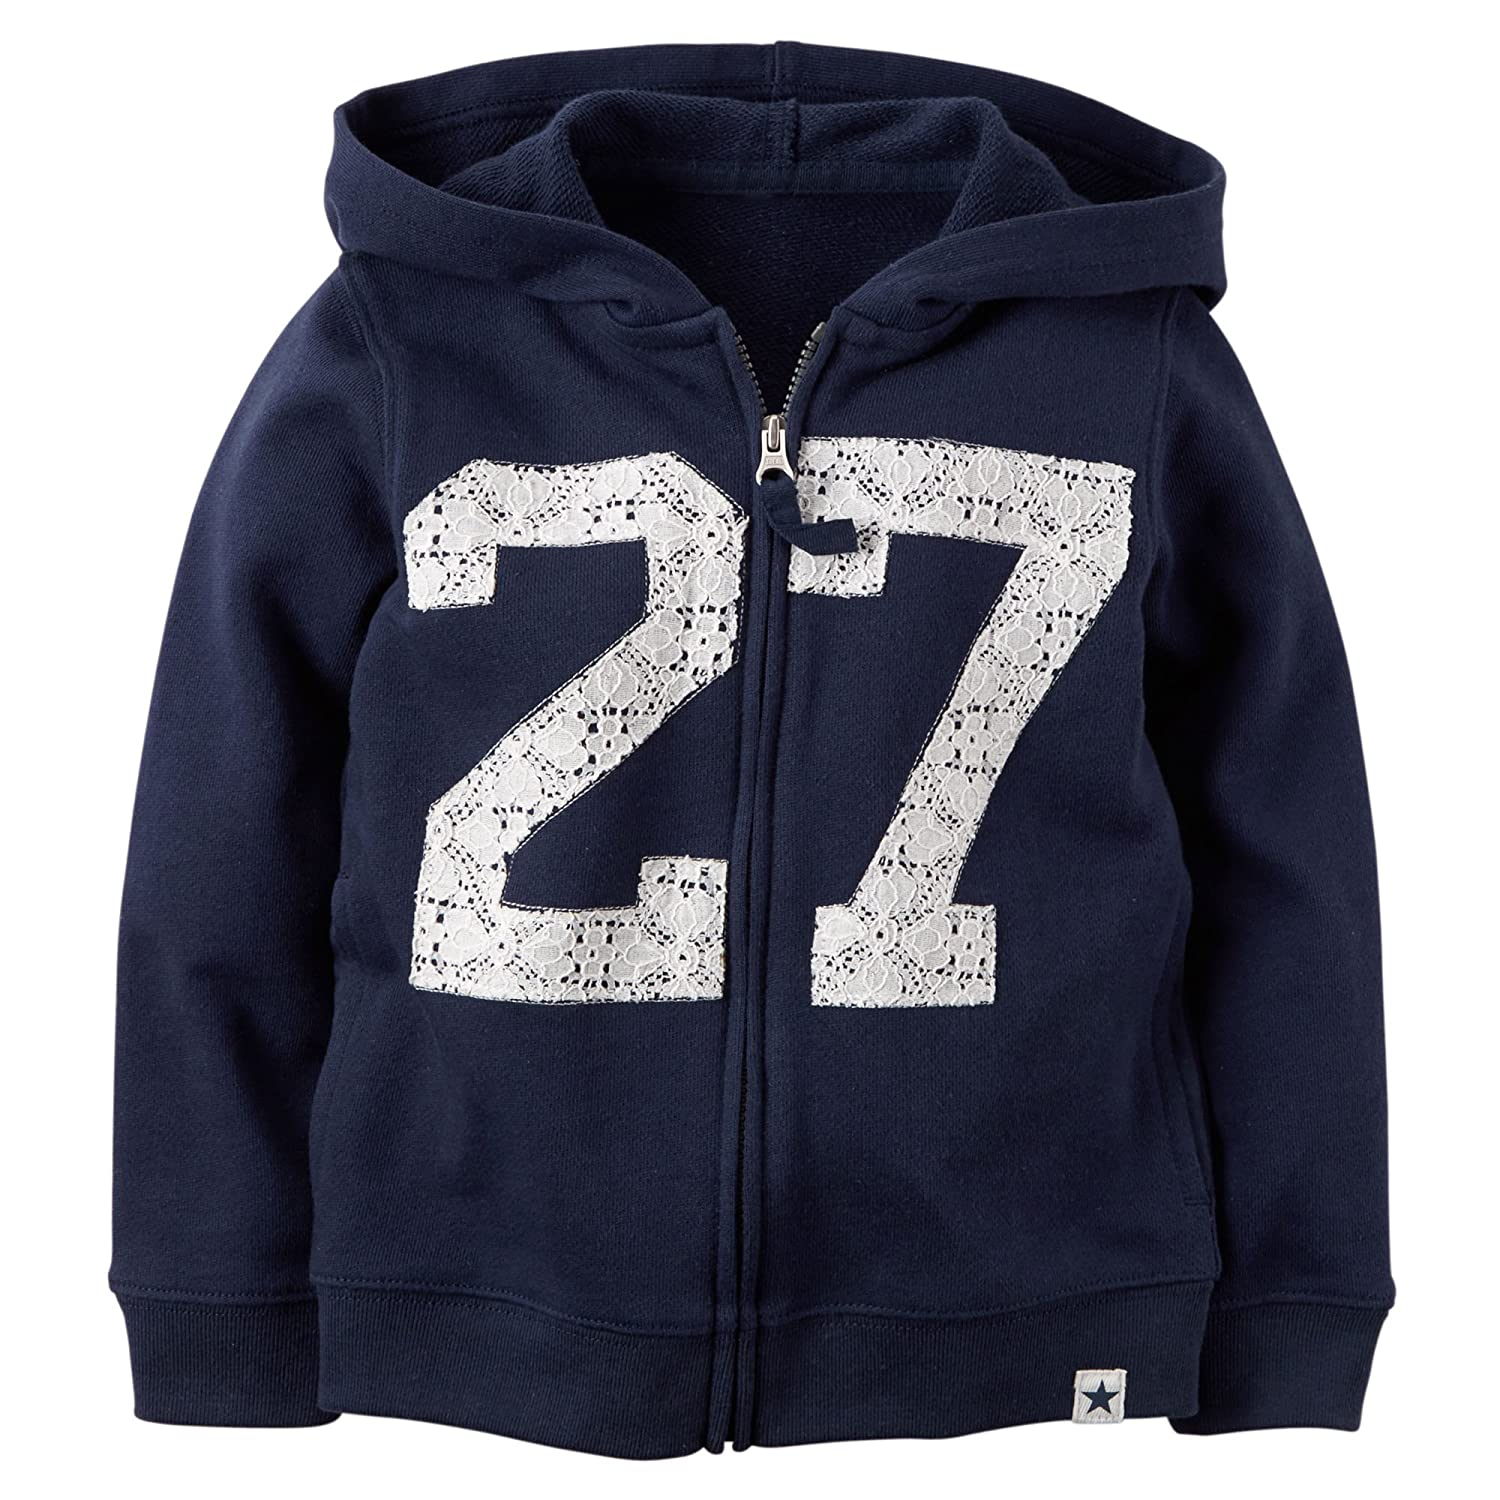 Carters Girls Navy Lace Detail French Terry Hoodie